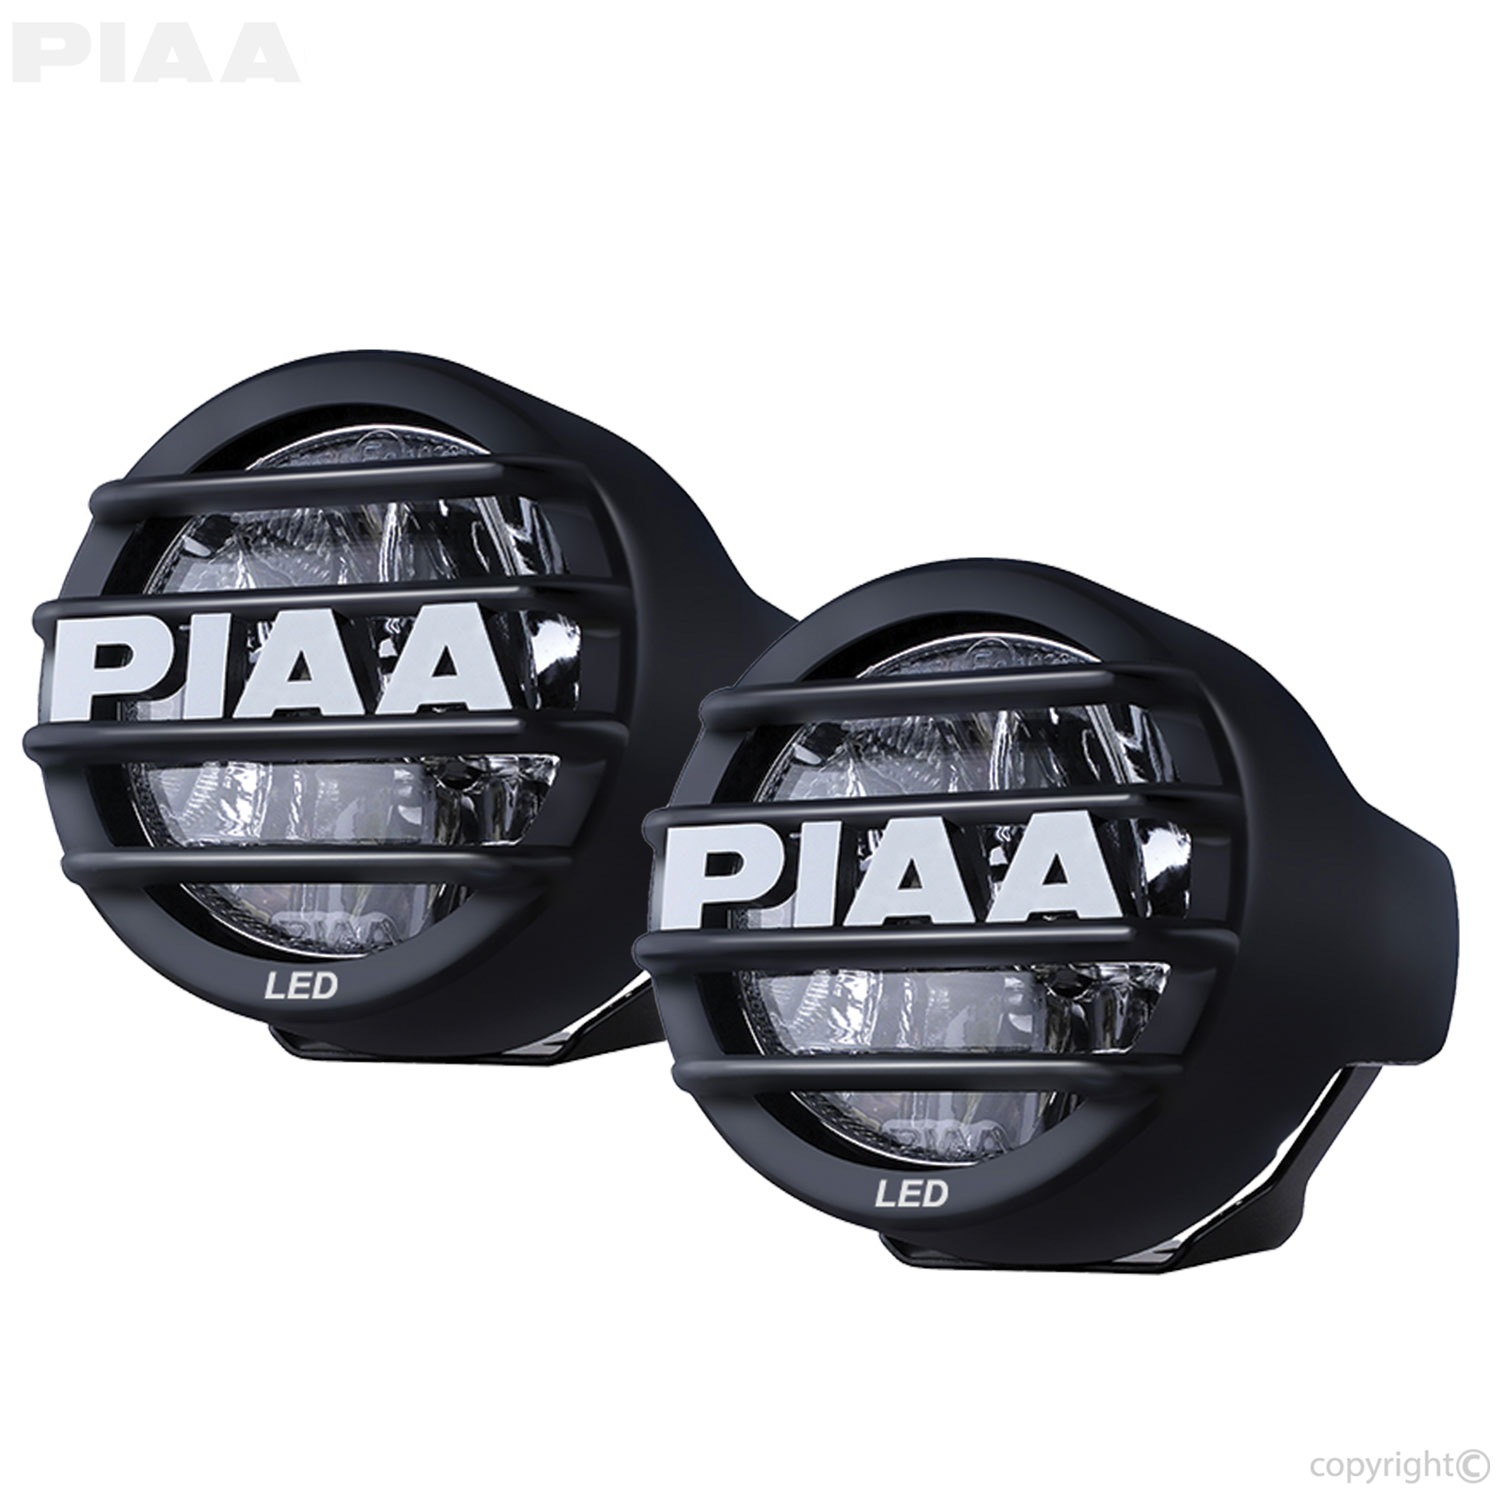 piaa led lights for bmw motorcycles rh piaa com PIAA Driving Lights PIAA Relay Schematic